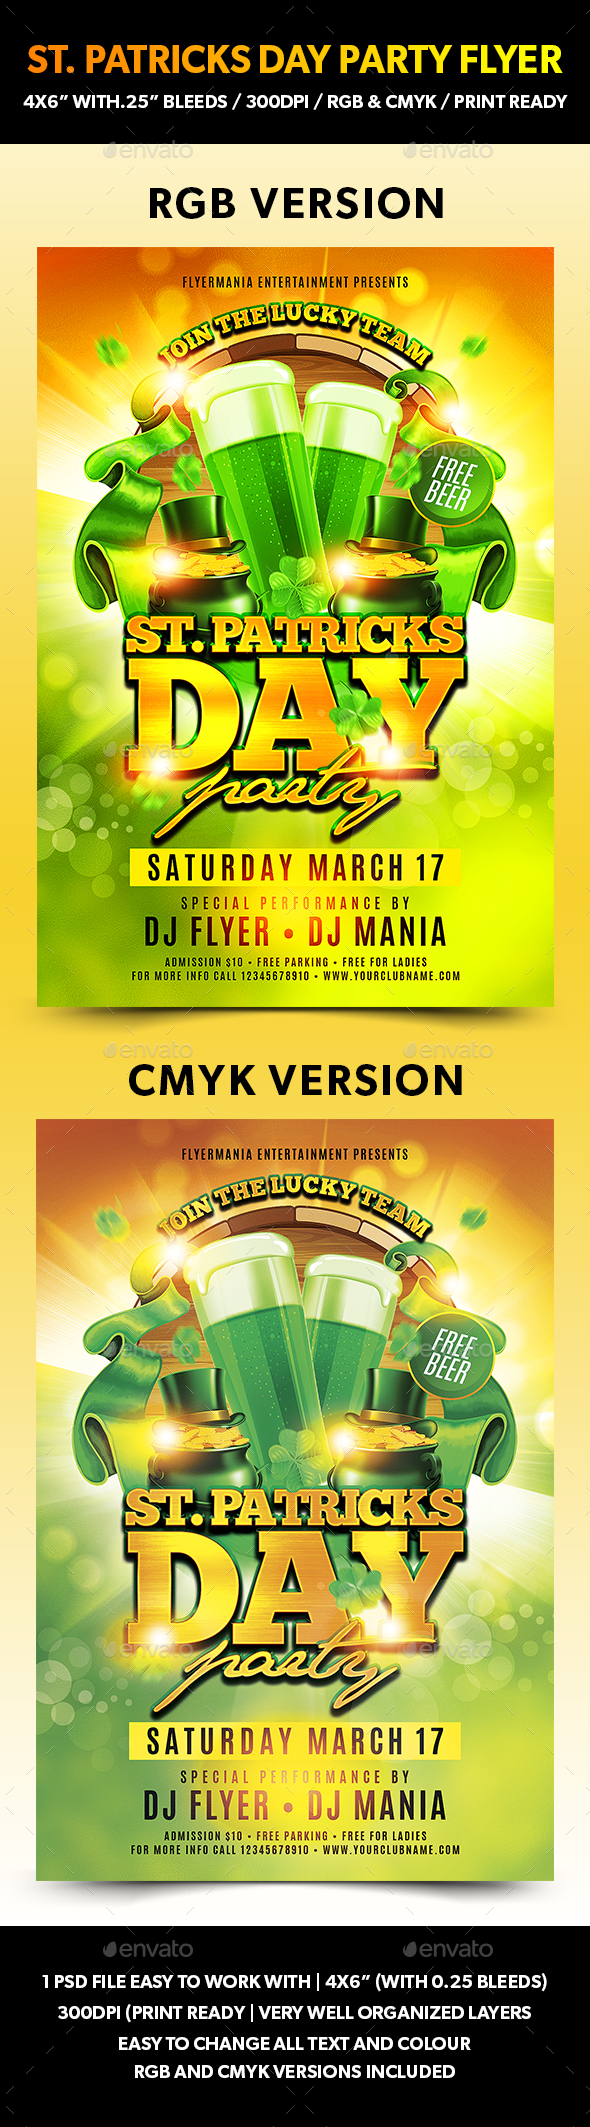 St. Patricks Day Party Flyer - Flyers Print Templates